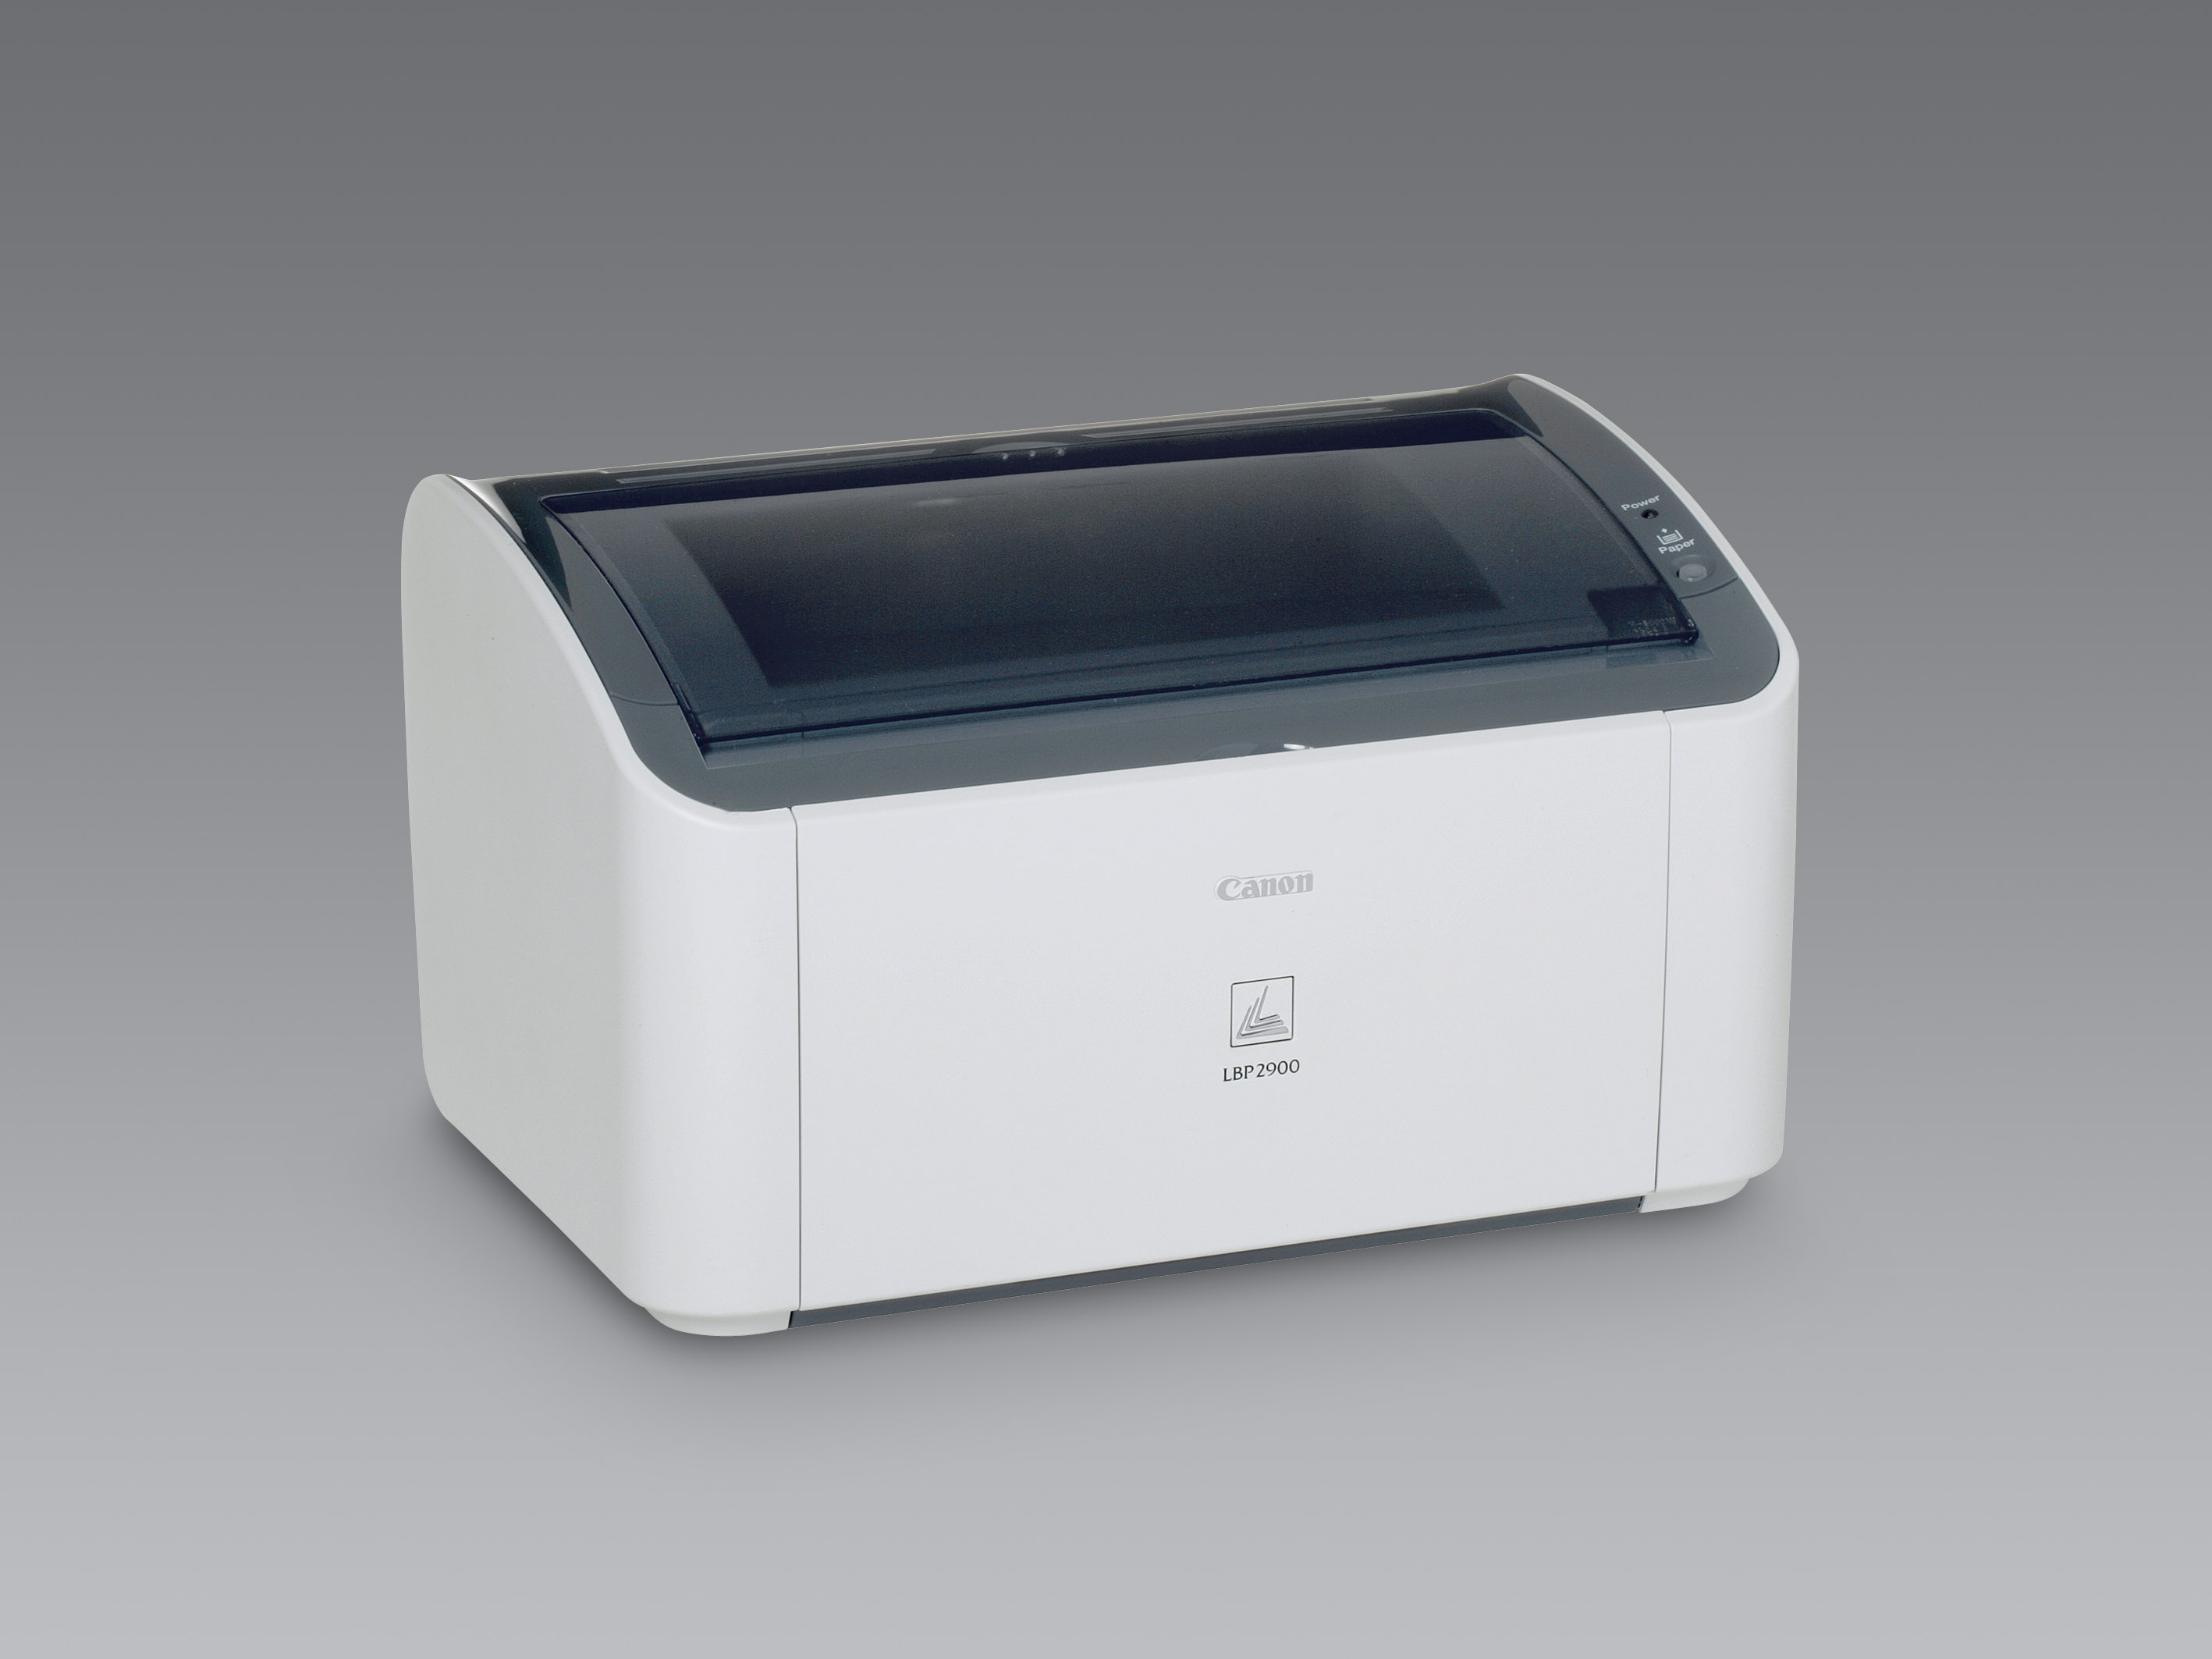 driver canon printer lbp 2900 windows 7 memphissoft. Black Bedroom Furniture Sets. Home Design Ideas